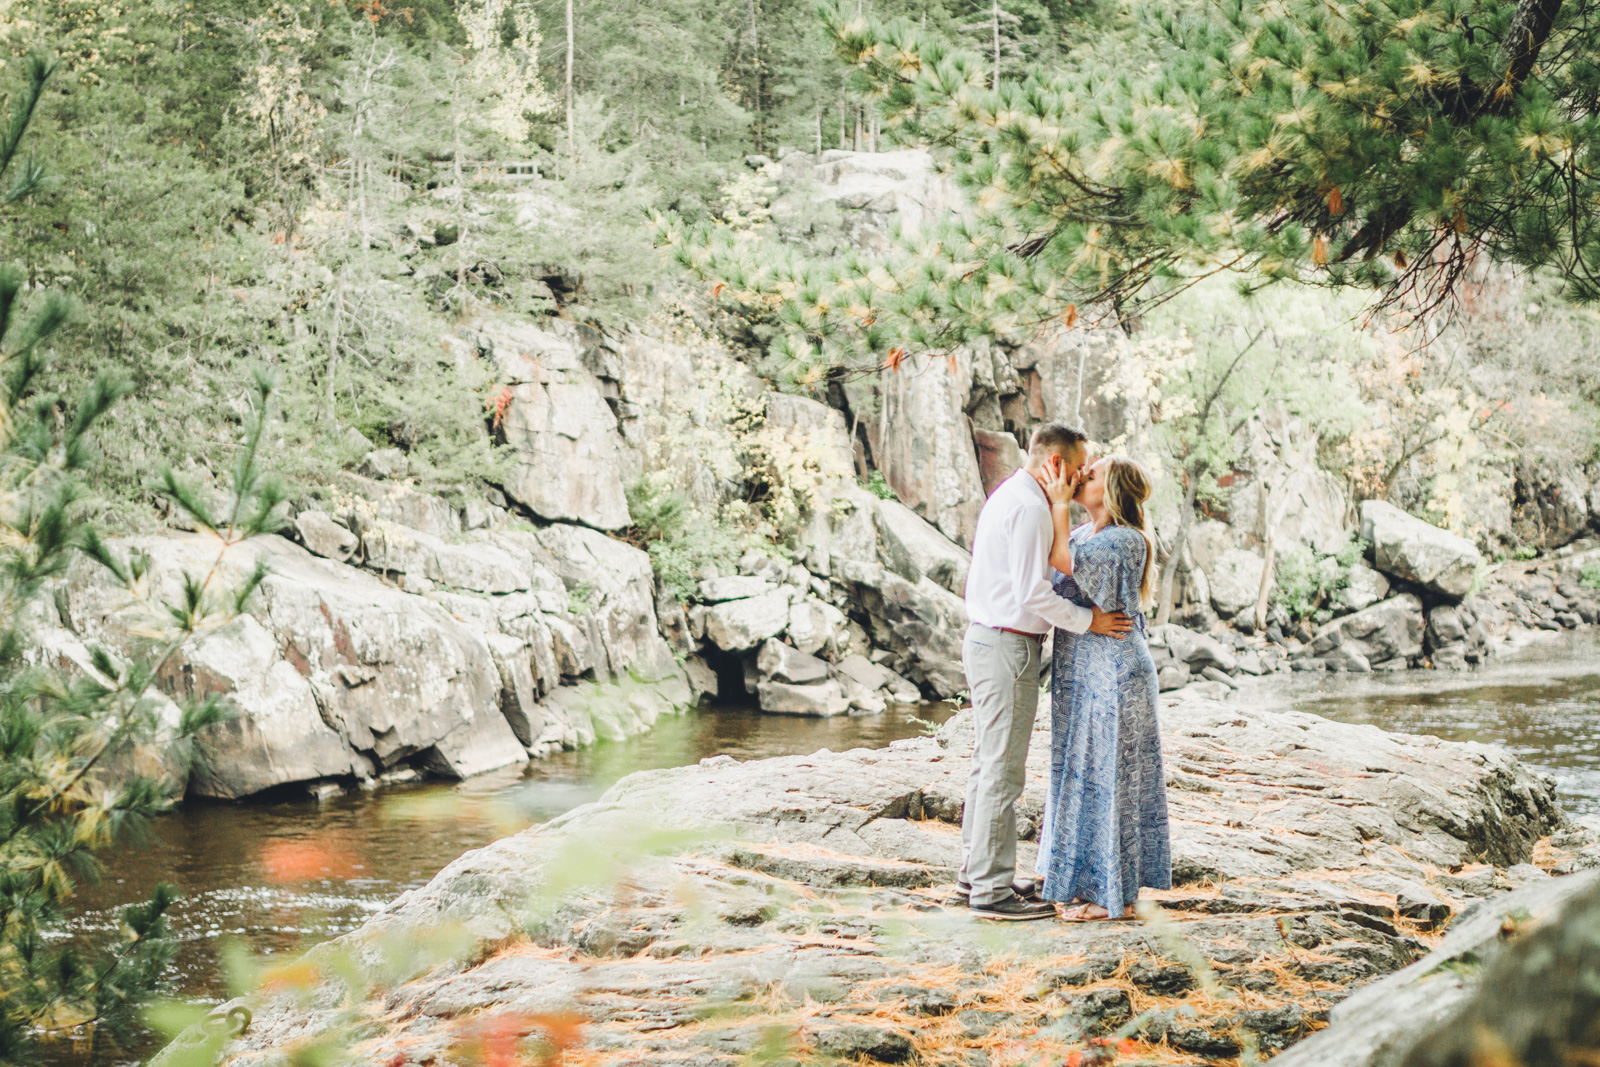 Morning Light Photography: Amanda & Nick's Taylor's Falls Engagement